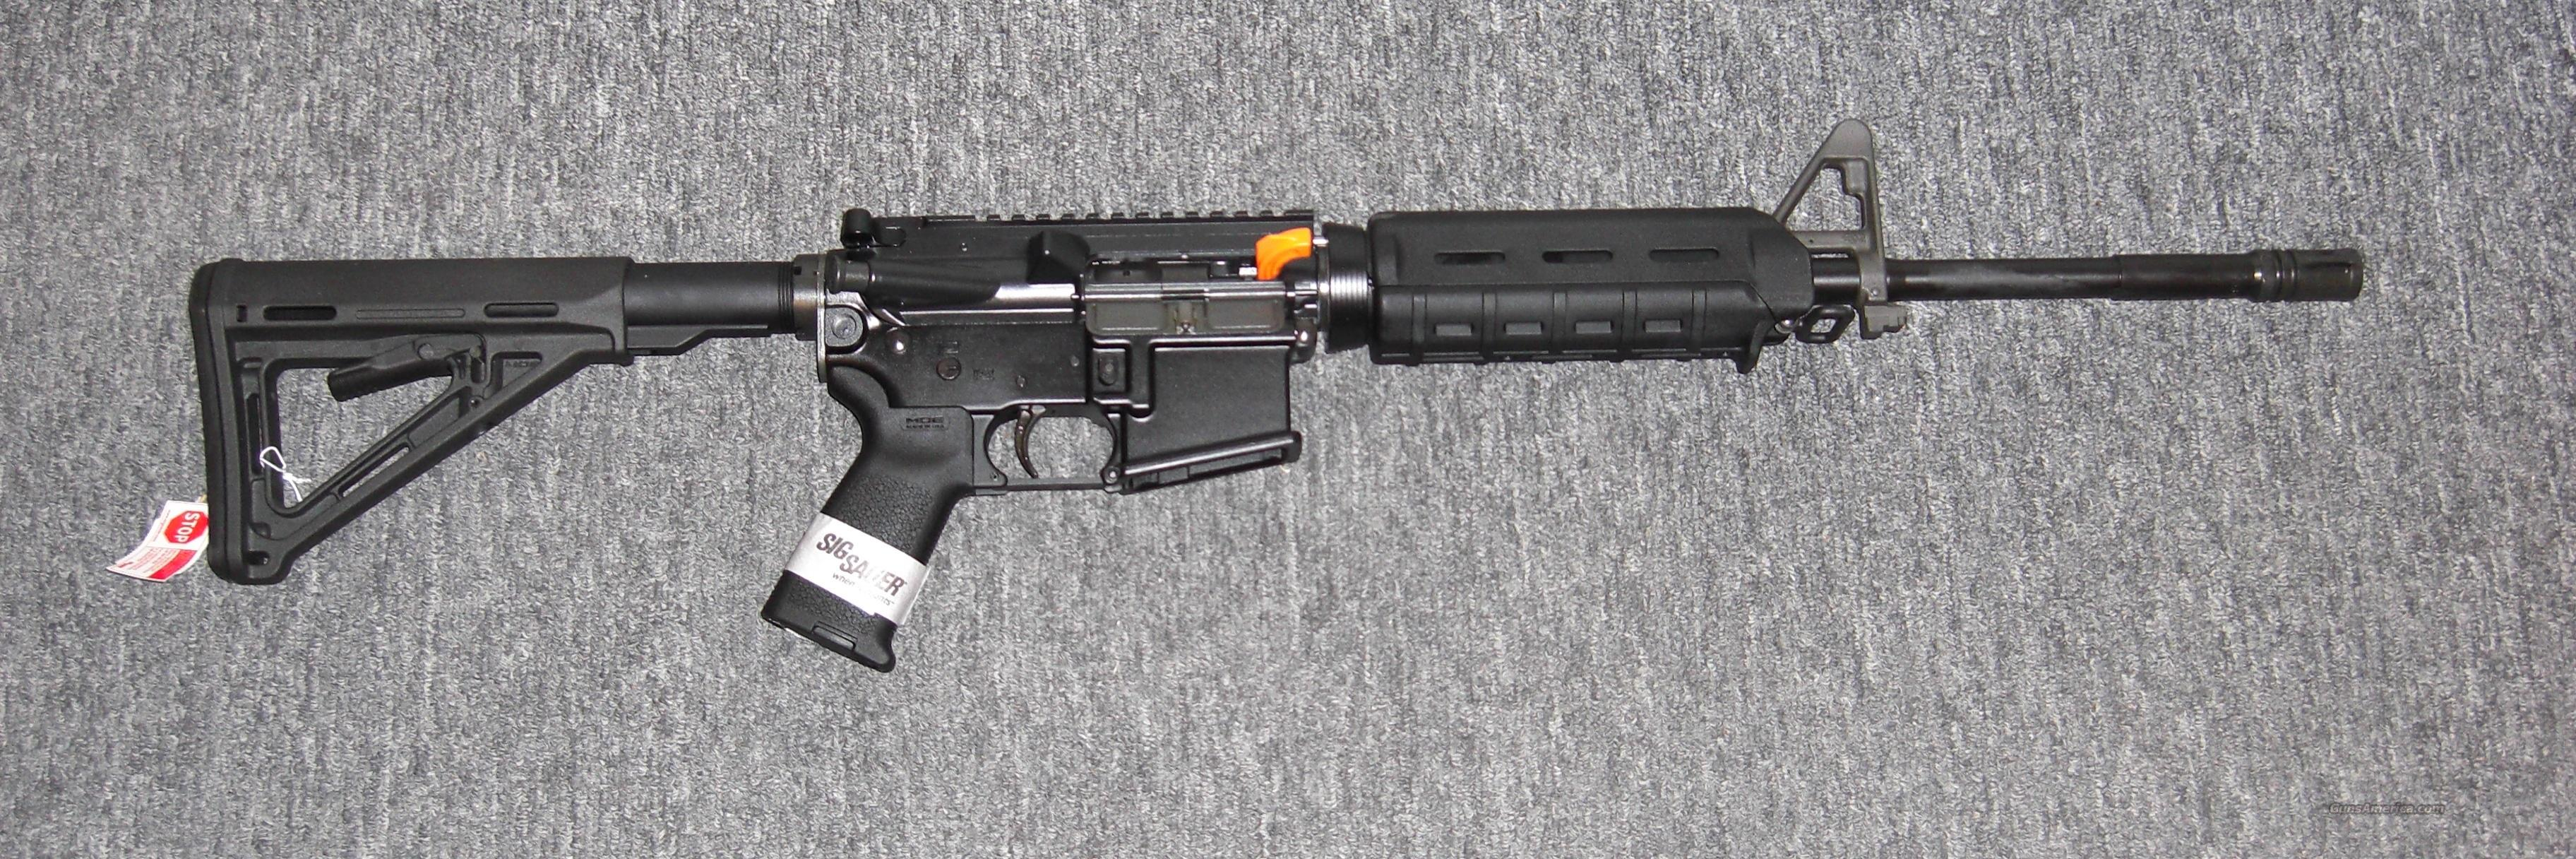 M400 w/black MOE furniture (RM400-16B-ECP)  Guns > Rifles > Sig - Sauer/Sigarms Rifles